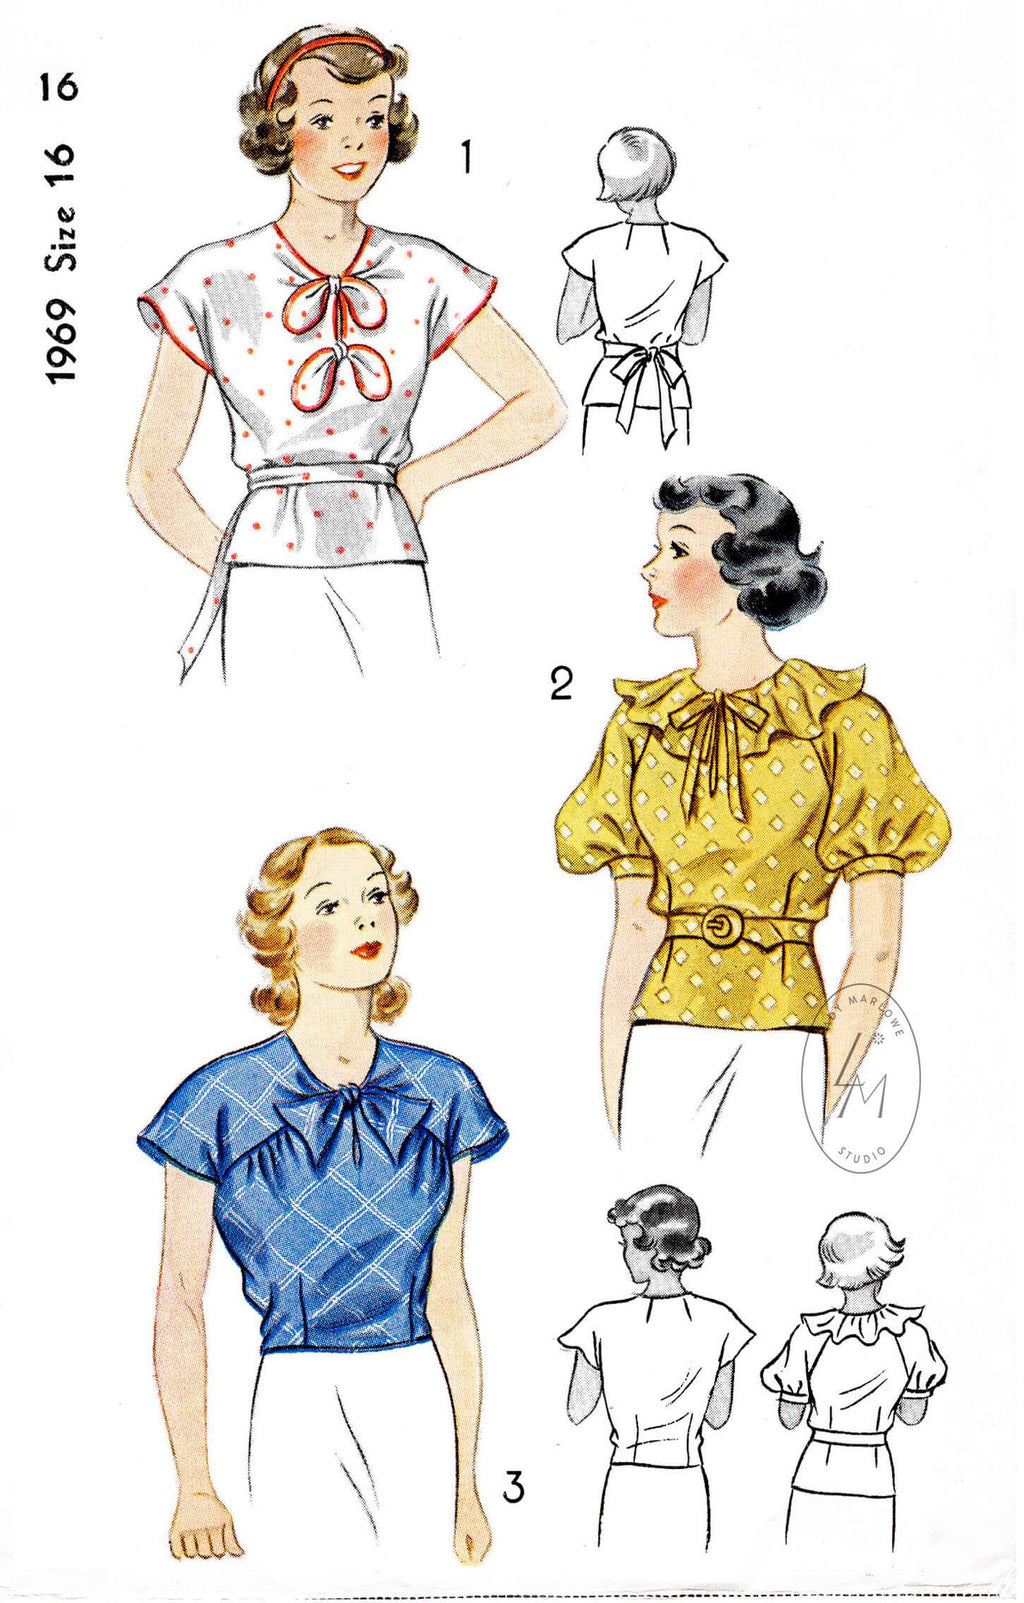 1930s 1936 set of blouses Simplicity 1969 drop shoulder bow accents puff sleeves ruffle collar raglan sleeve vintage sewing pattern reproduction